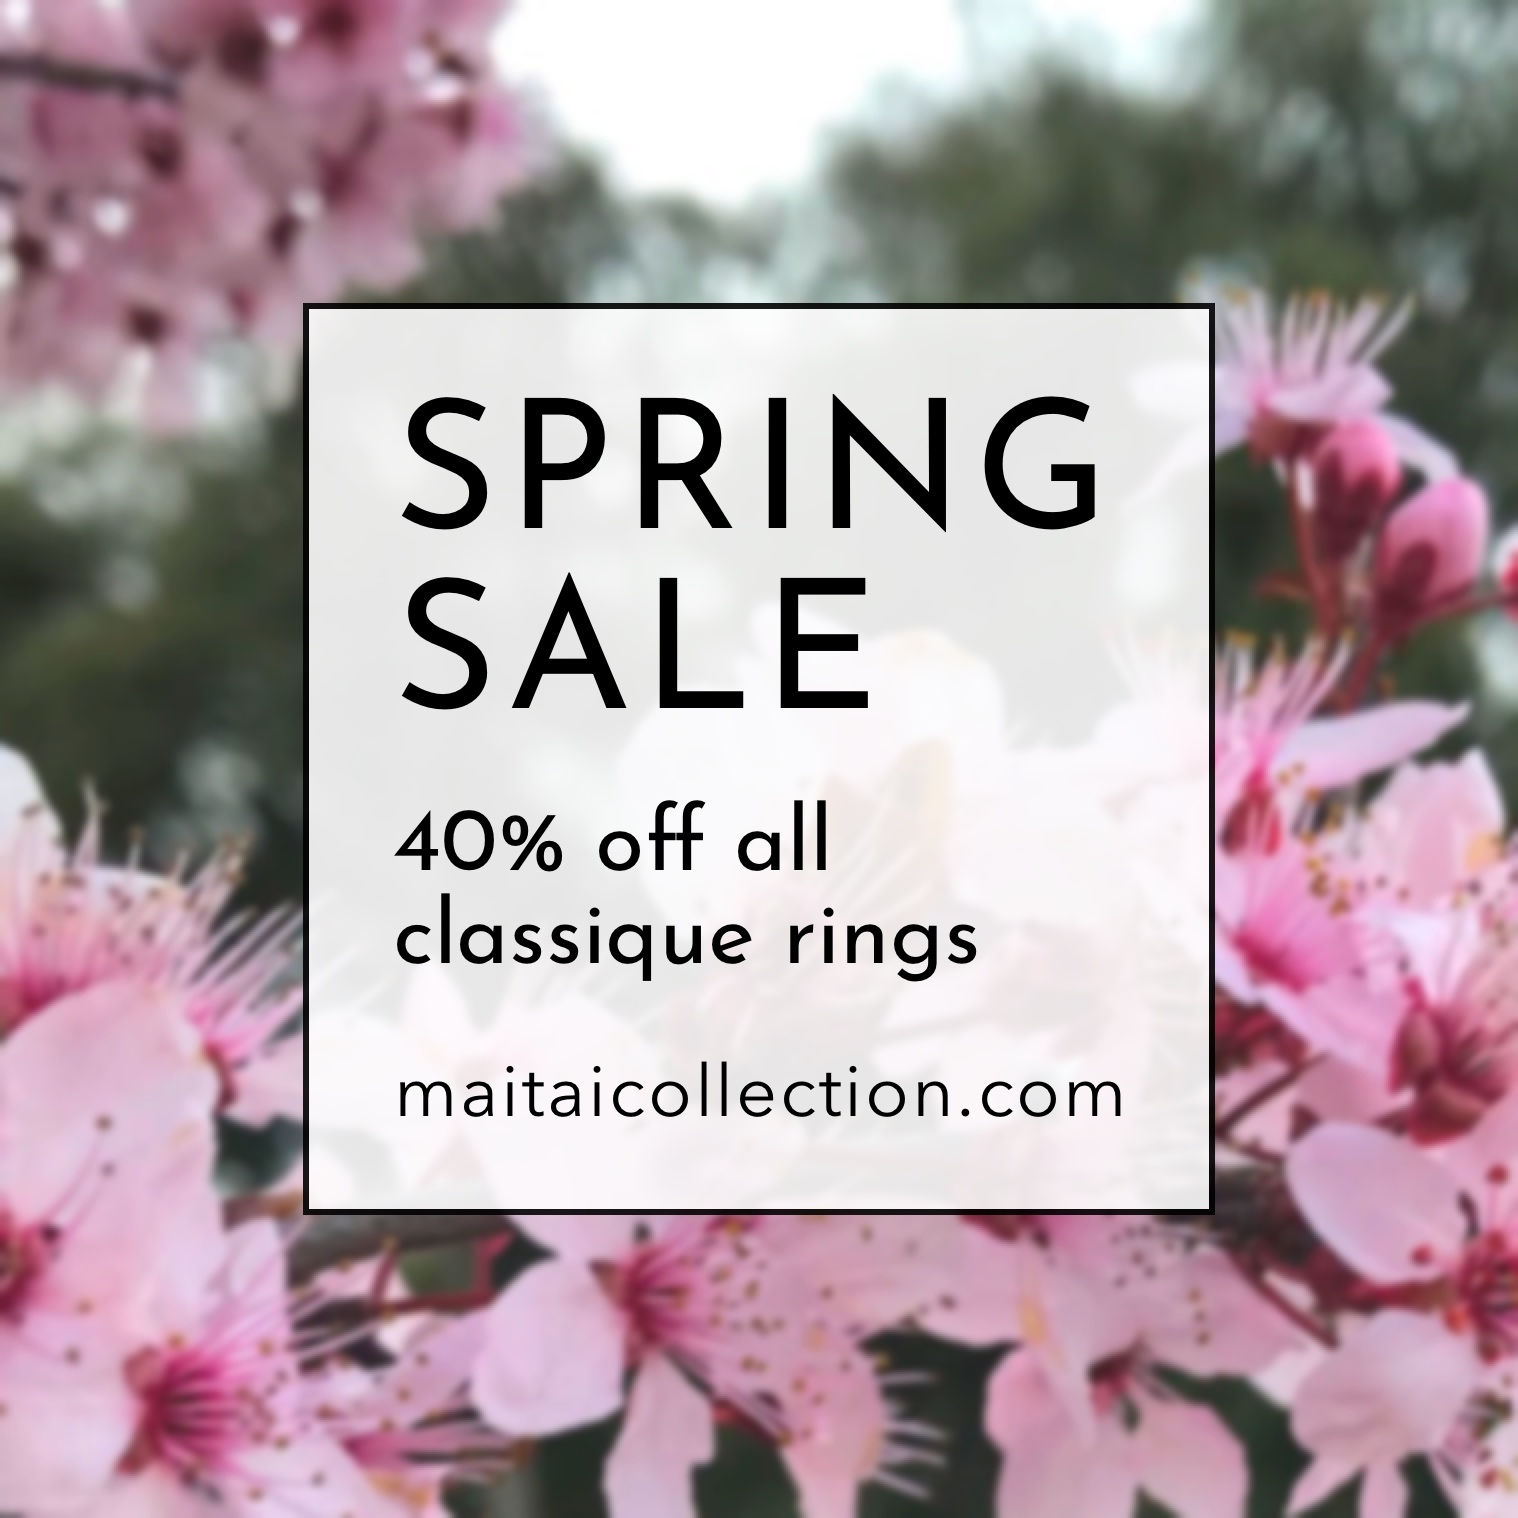 Classique scarf rings - 40% off